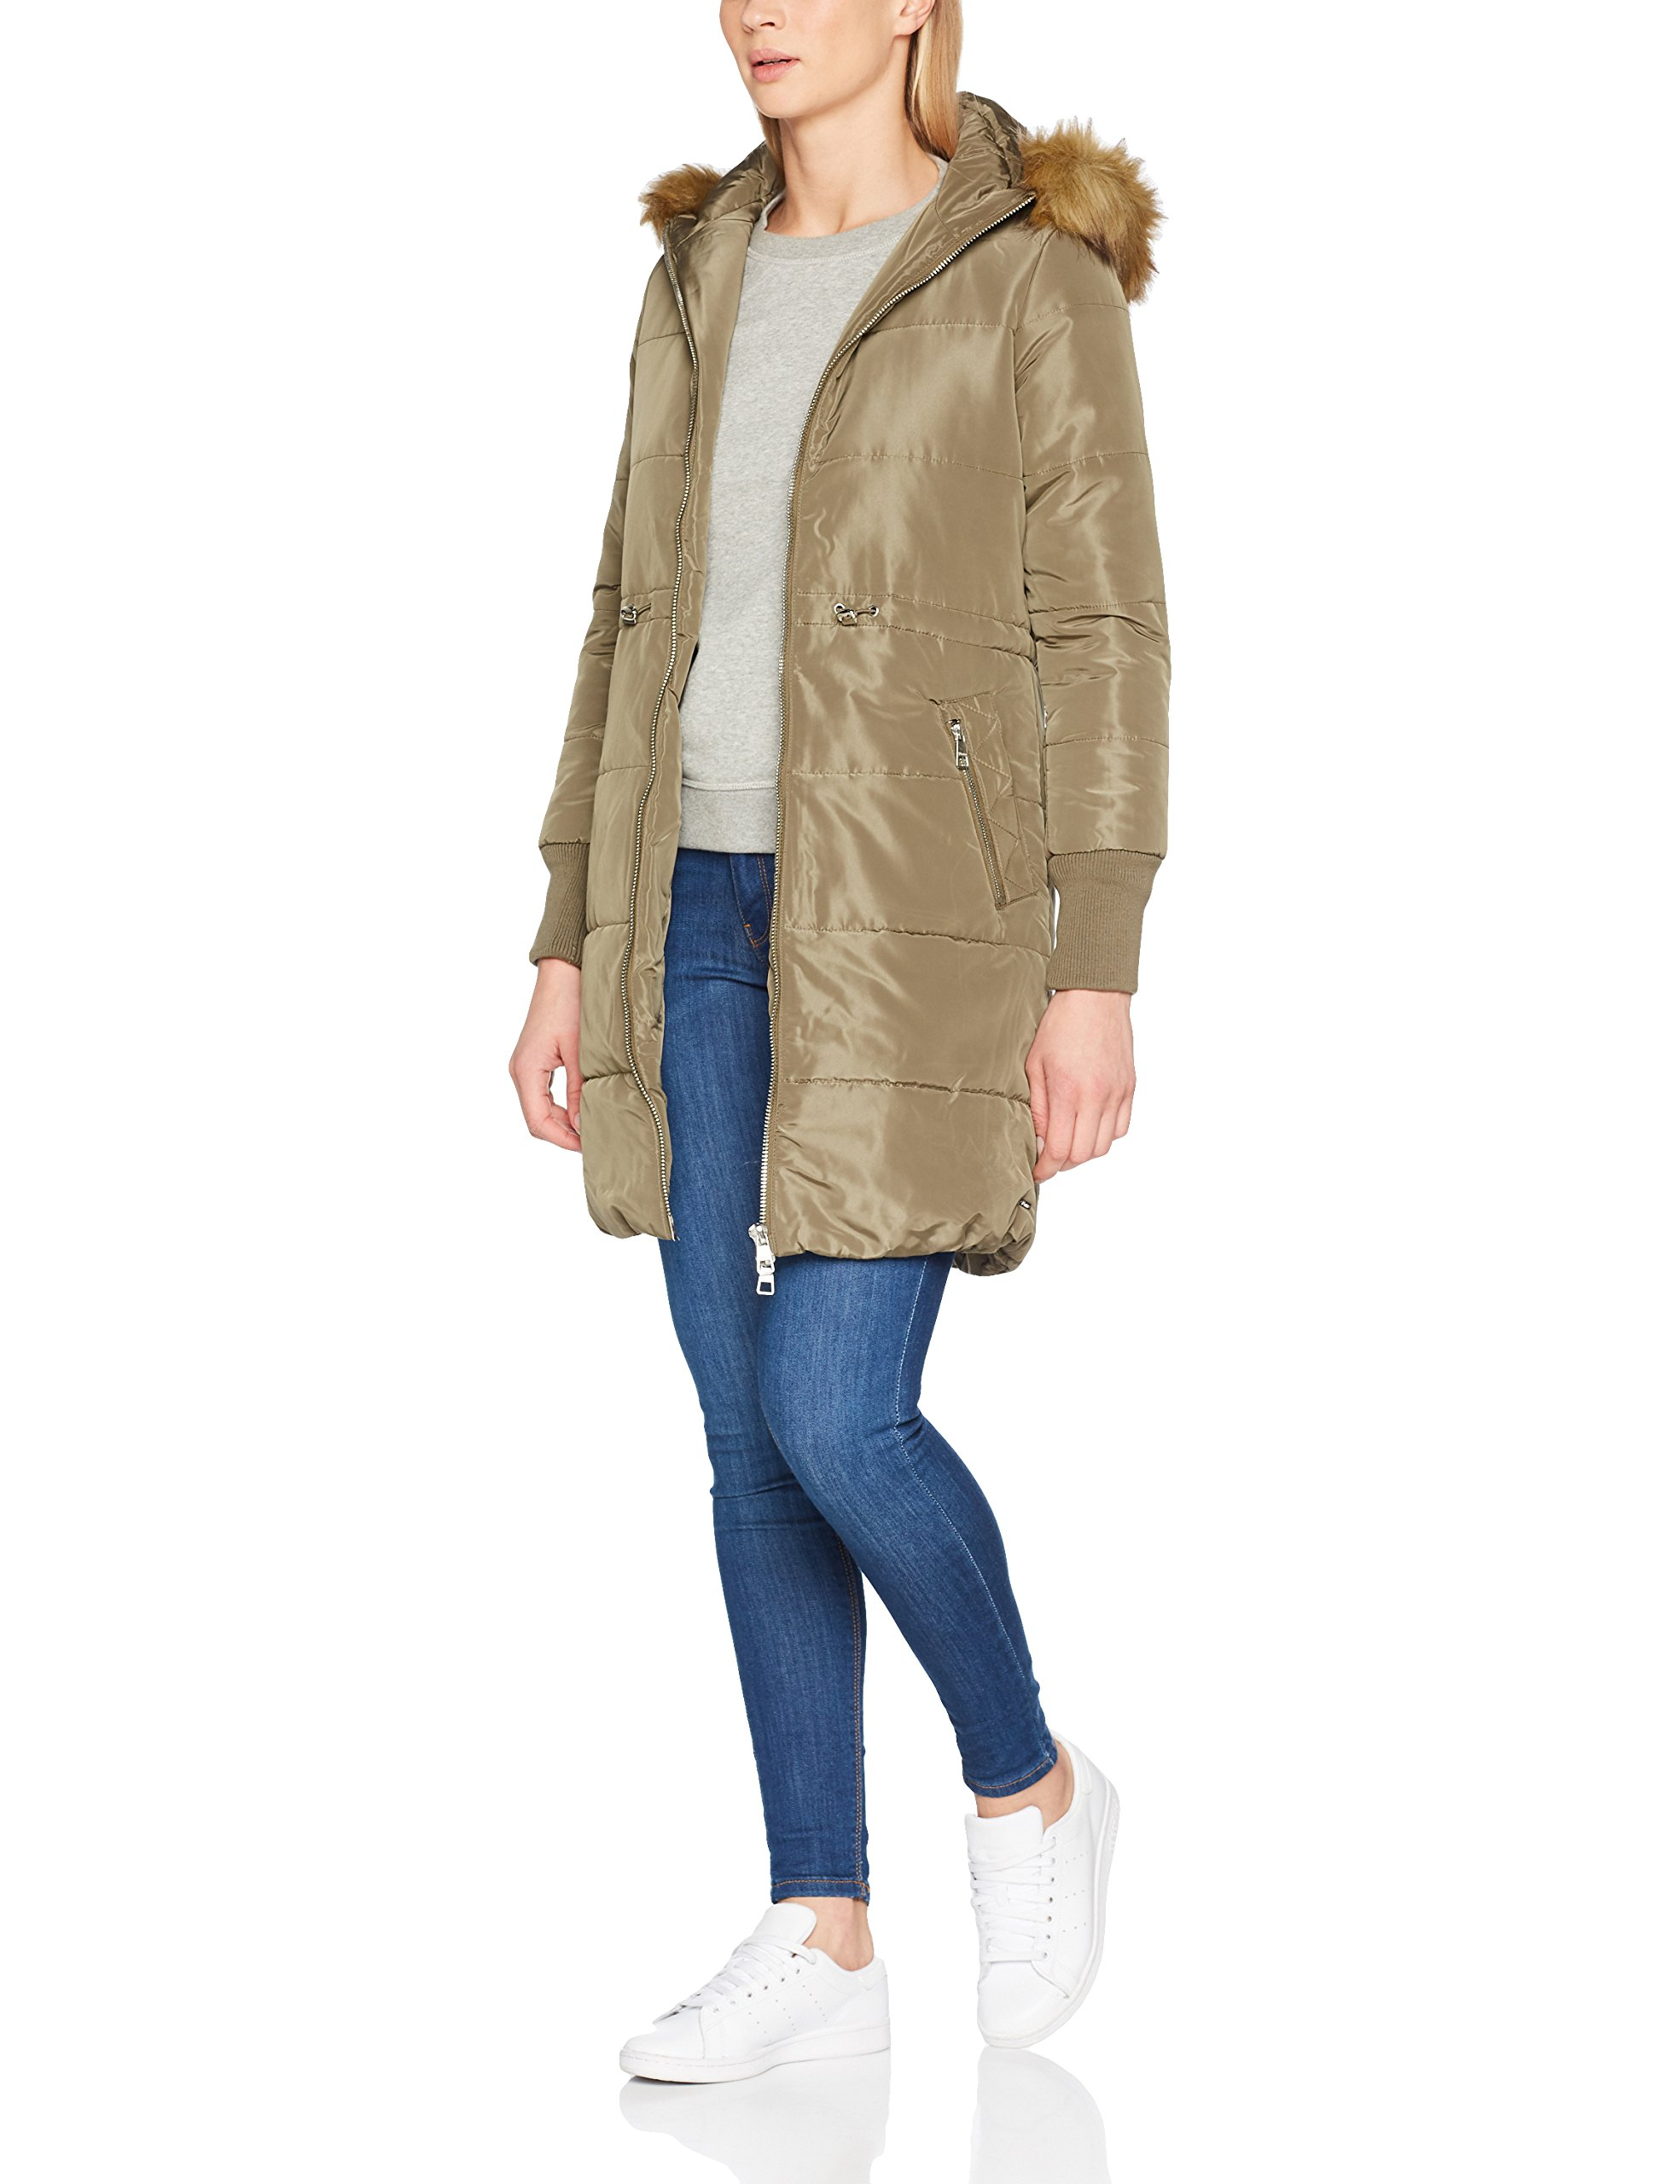 With 732238taille Denim ManteauVertlight Padded Military Coat Tom Tailor FabricantMediumFemme Green Hood XOZuTkPi